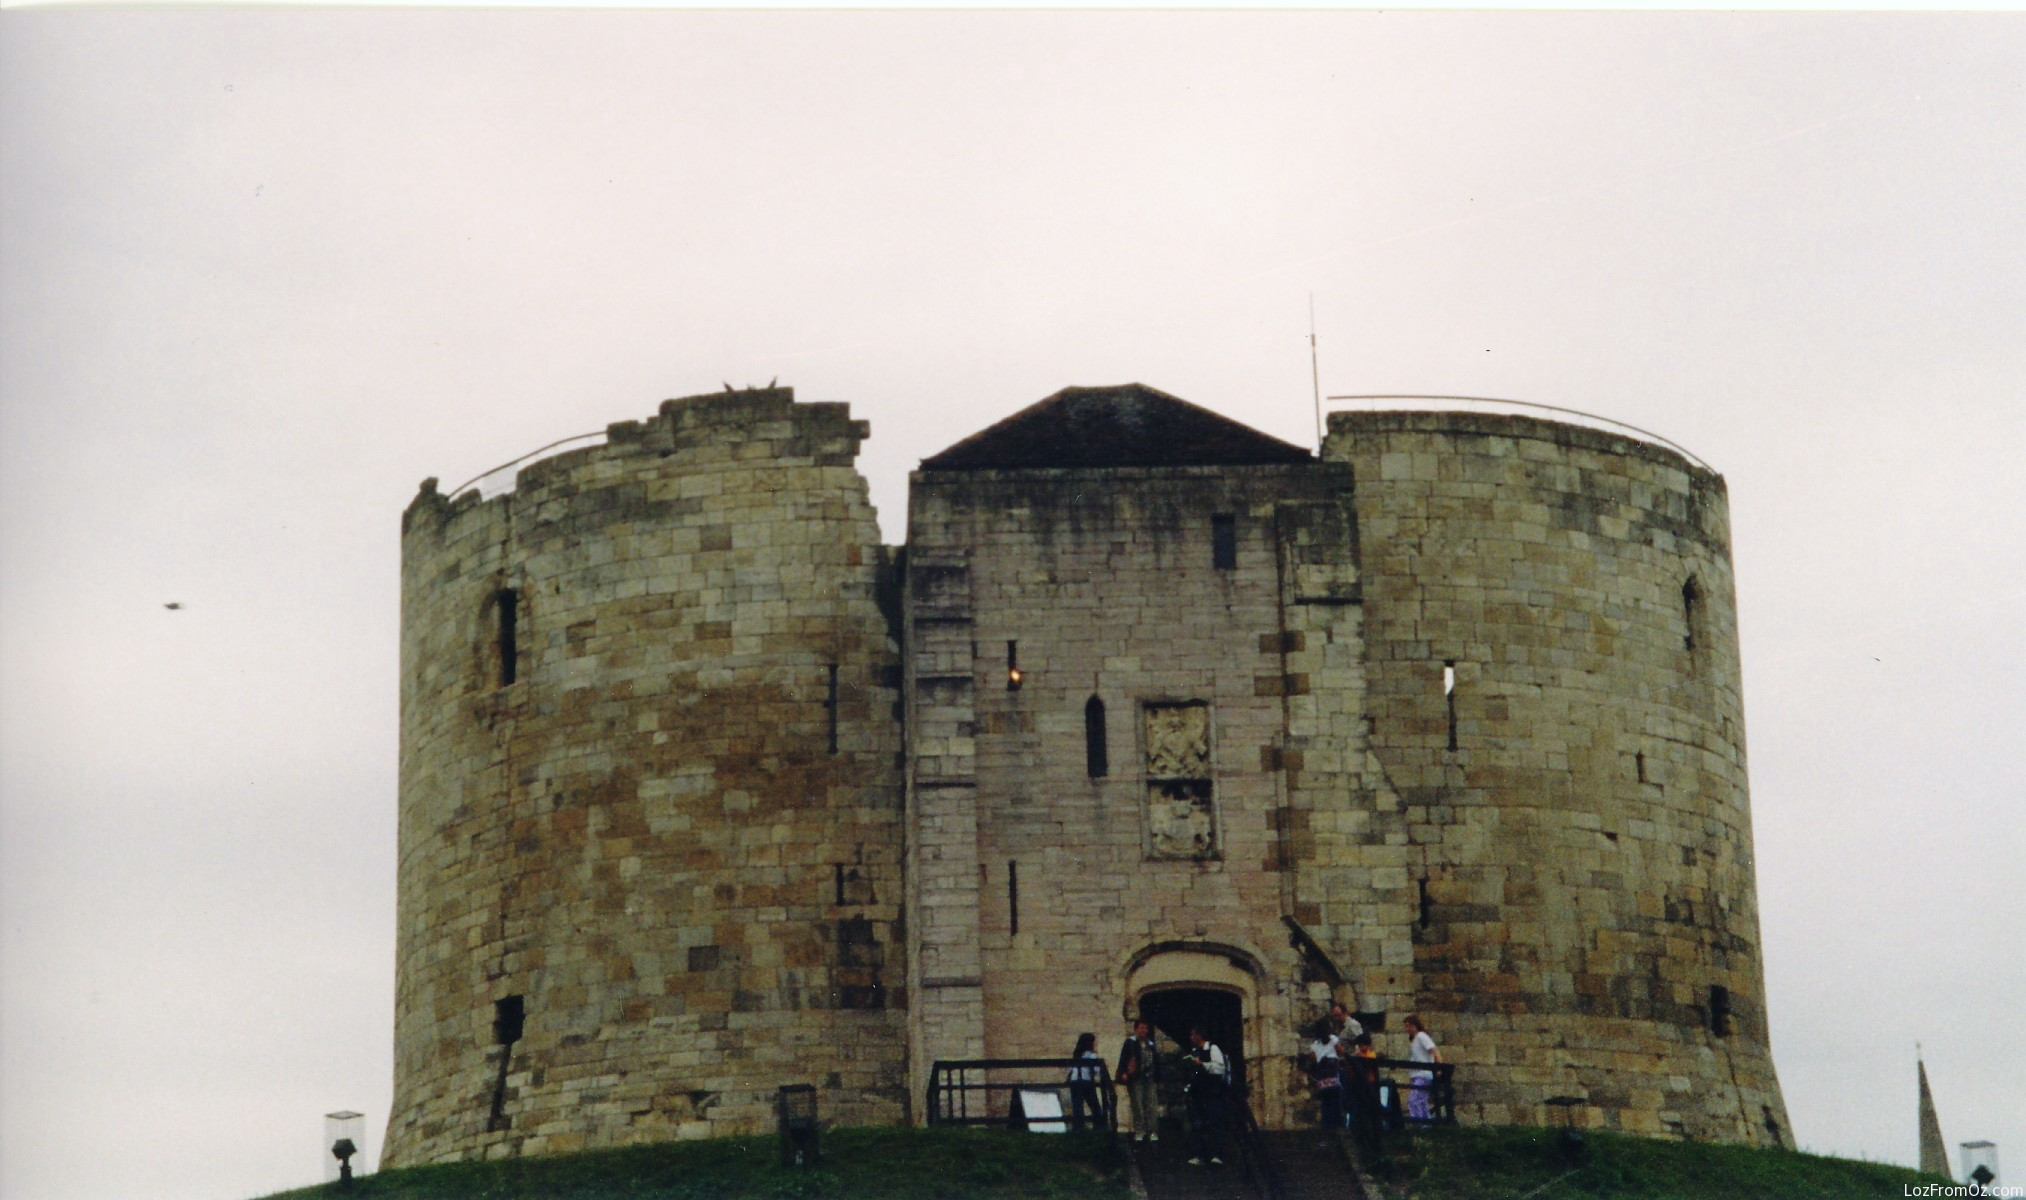 2003 Discovering Britain & Ireland – Day 5